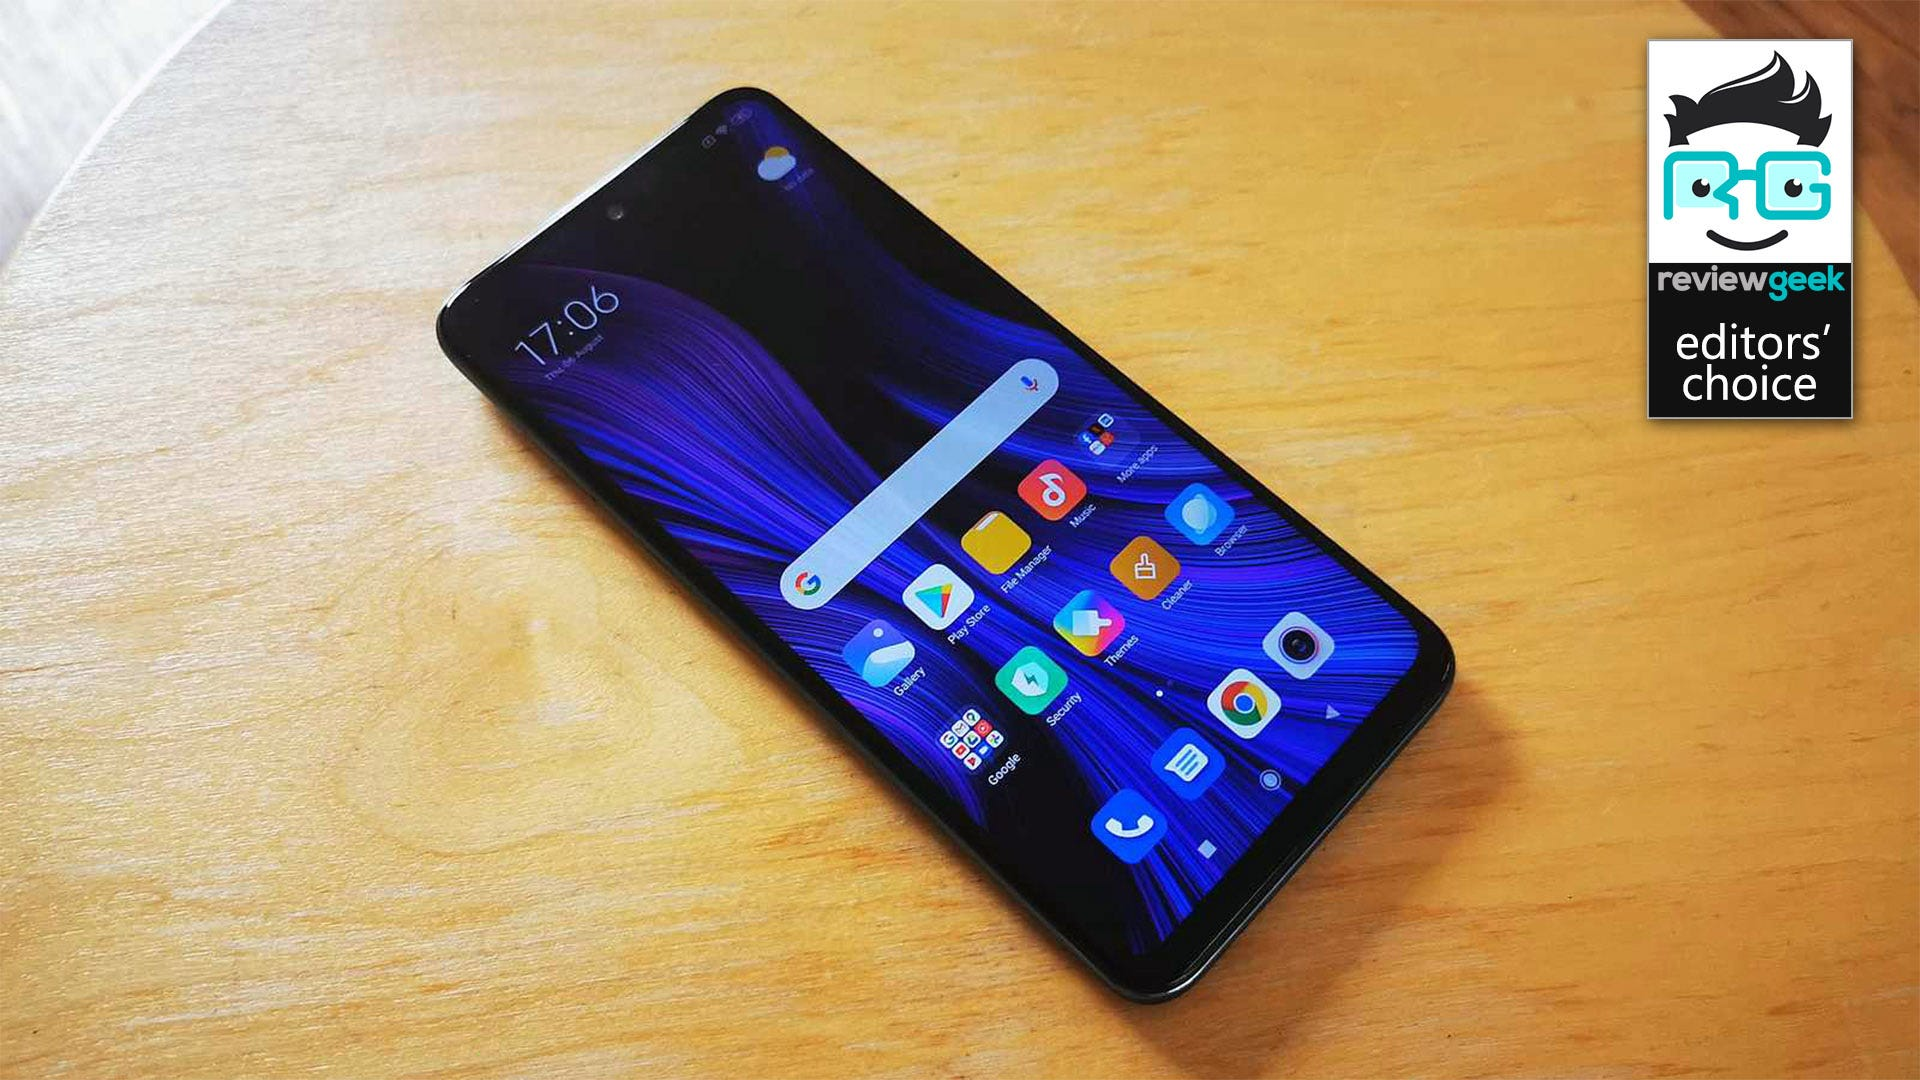 Xiaomi Redmi Note 9 Pro A Sub 300 Phone With Killer Upper Midrange Features Review Geek